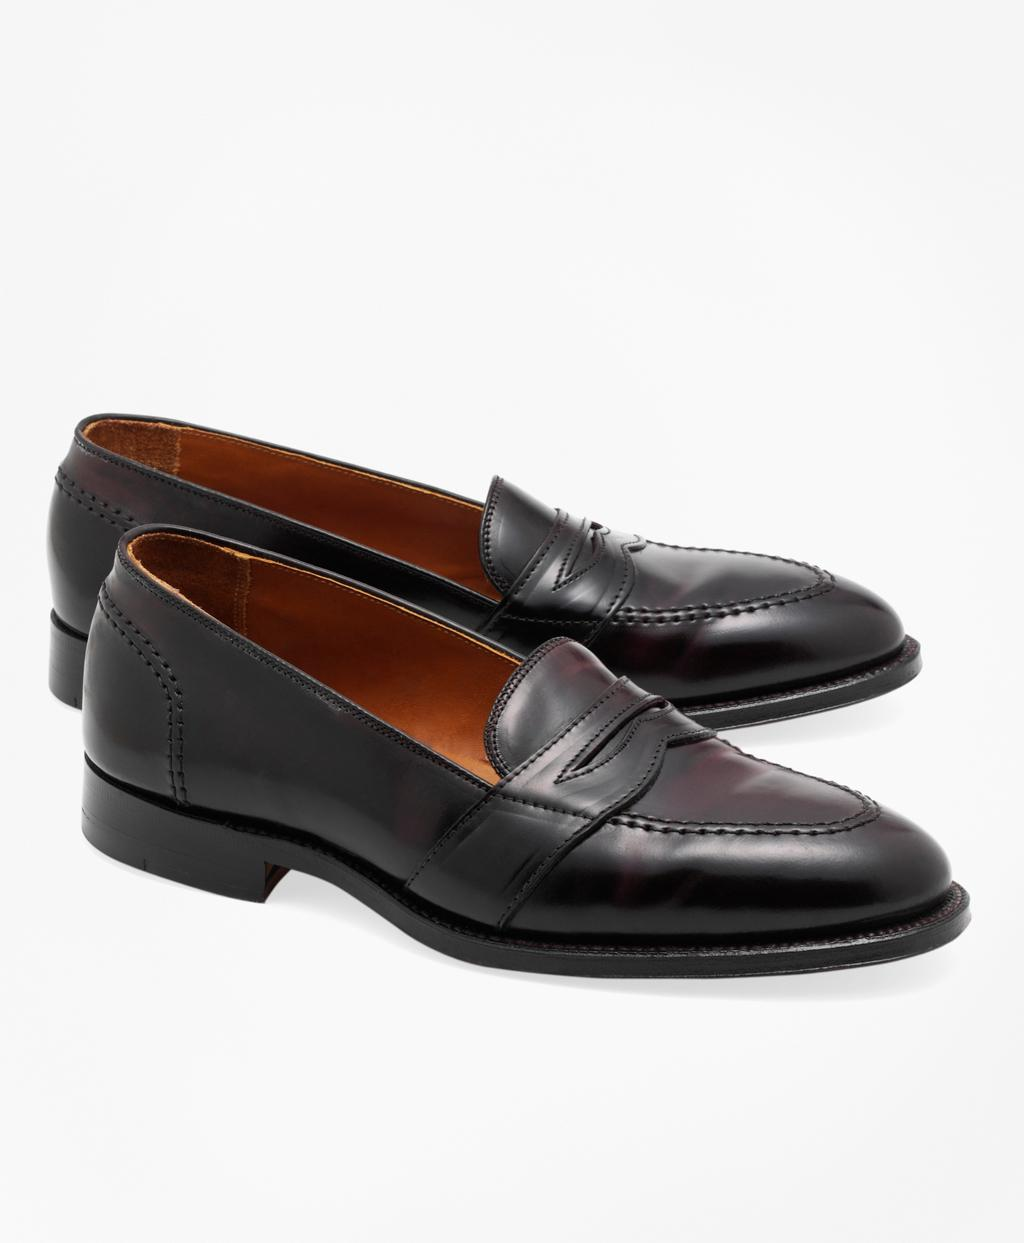 5dab0f69da3 Lyst - Brooks Brothers Cordovan Low Vamp Loafers in Red for Men